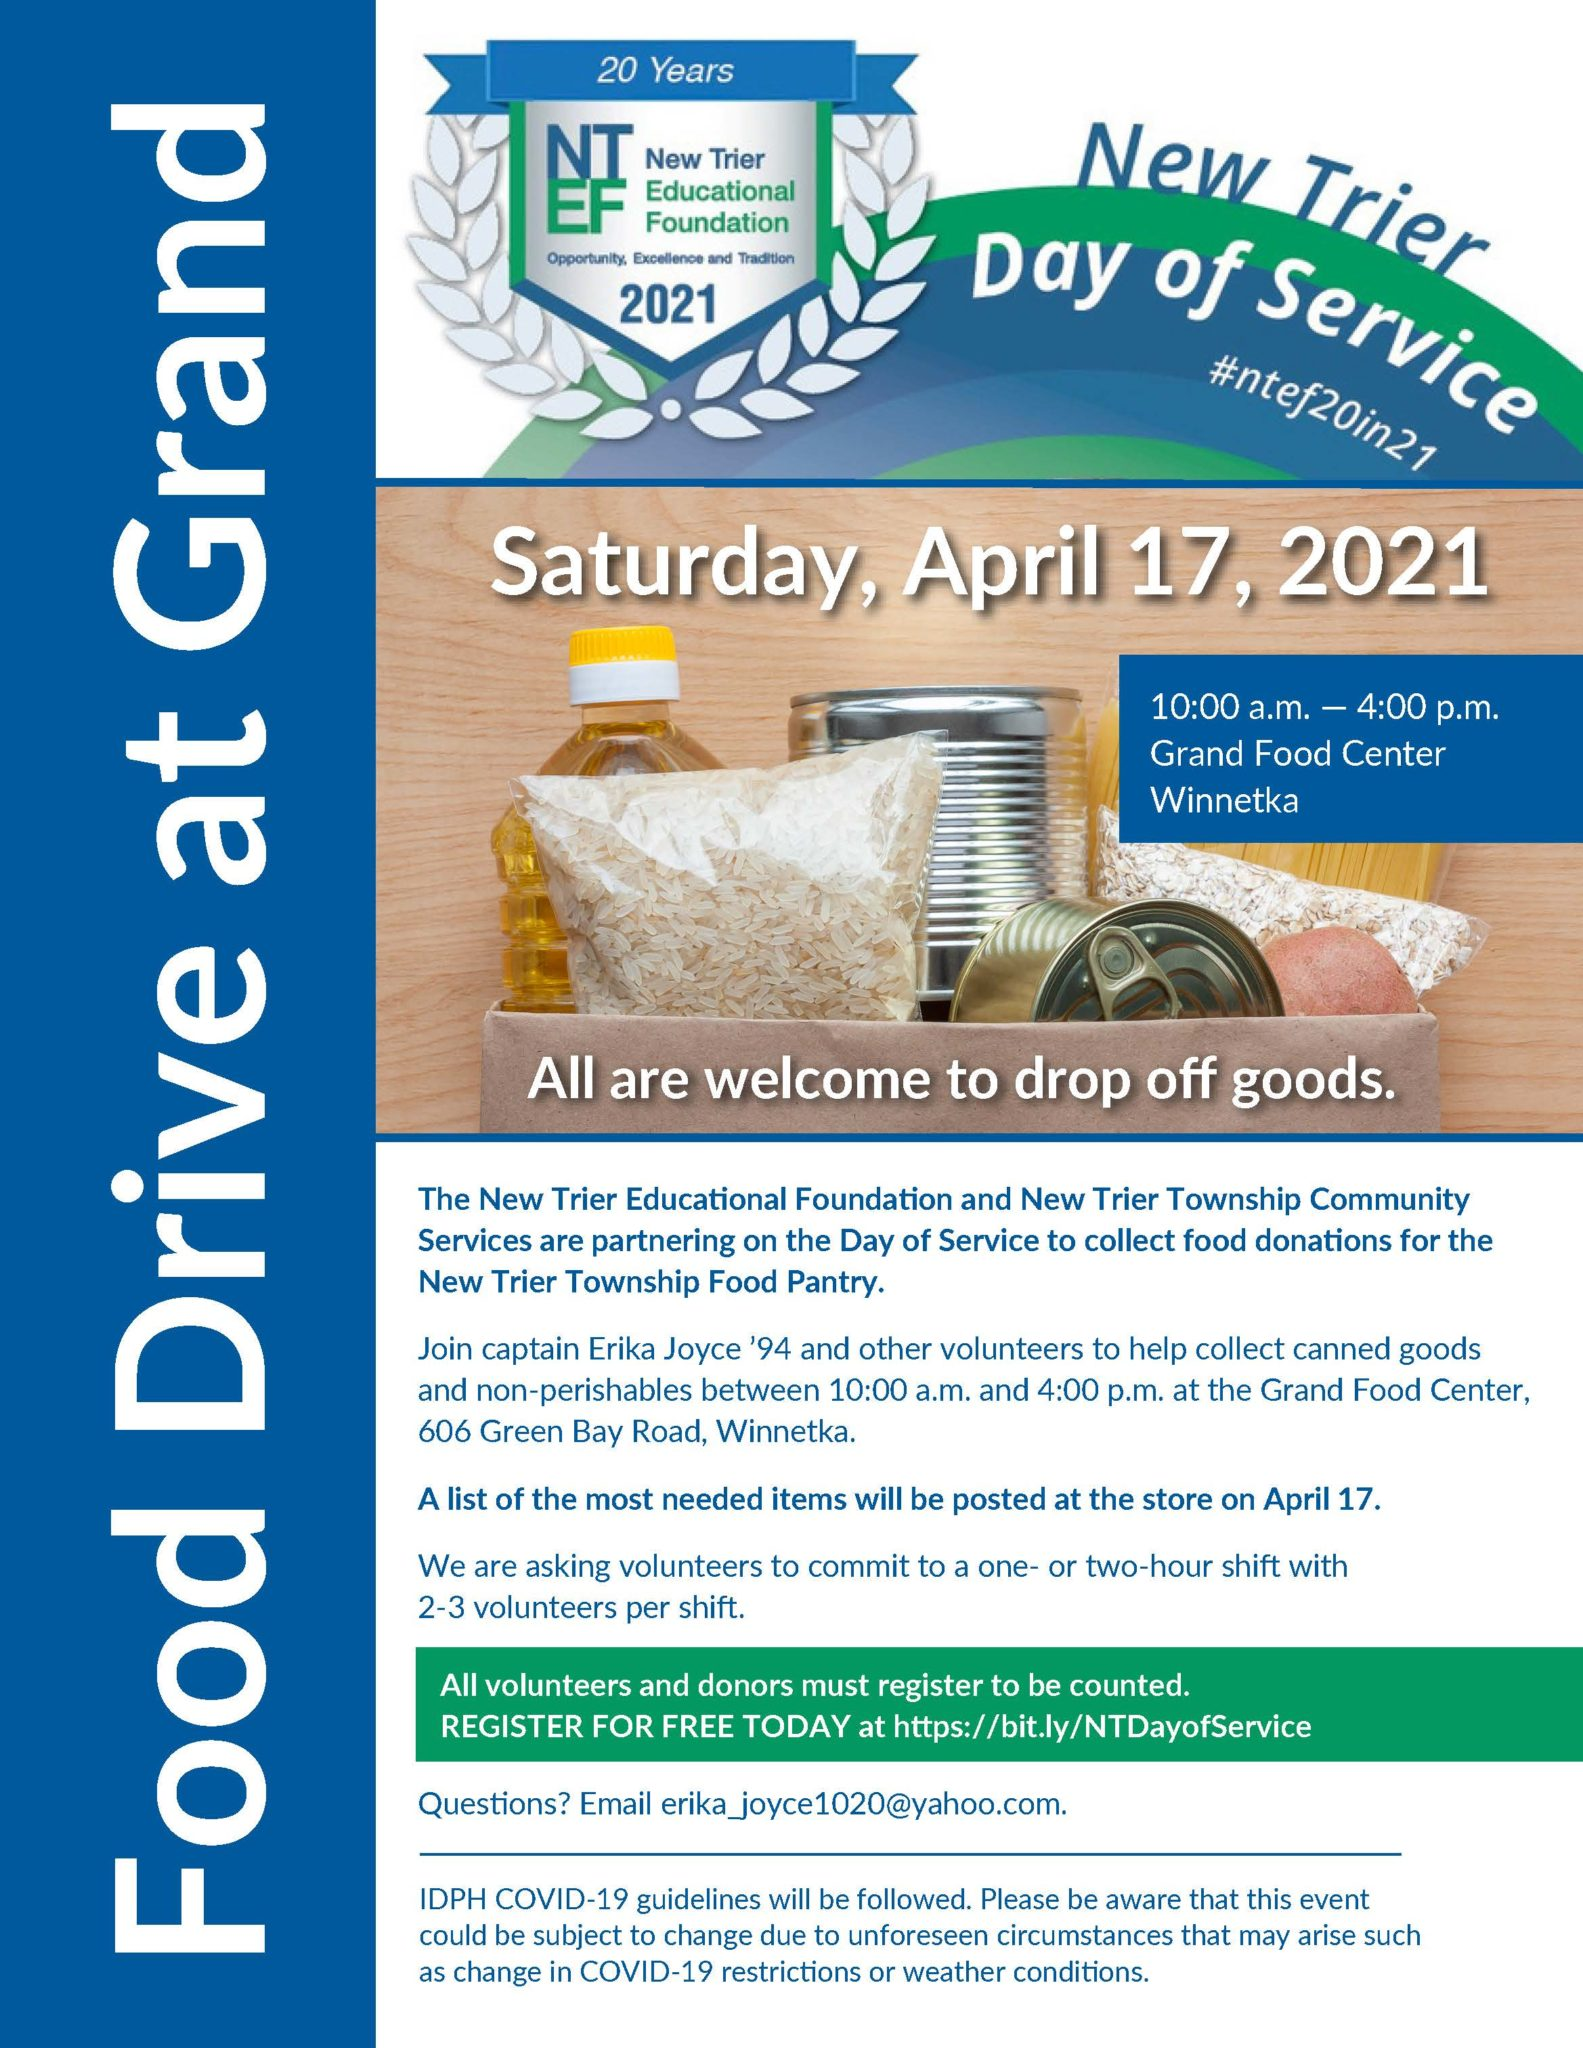 Join Captain Erika Joyce '94 Foundation Director and support the New Trier Township Food Pantry at the Grand Food Center in Winnetka, IL.